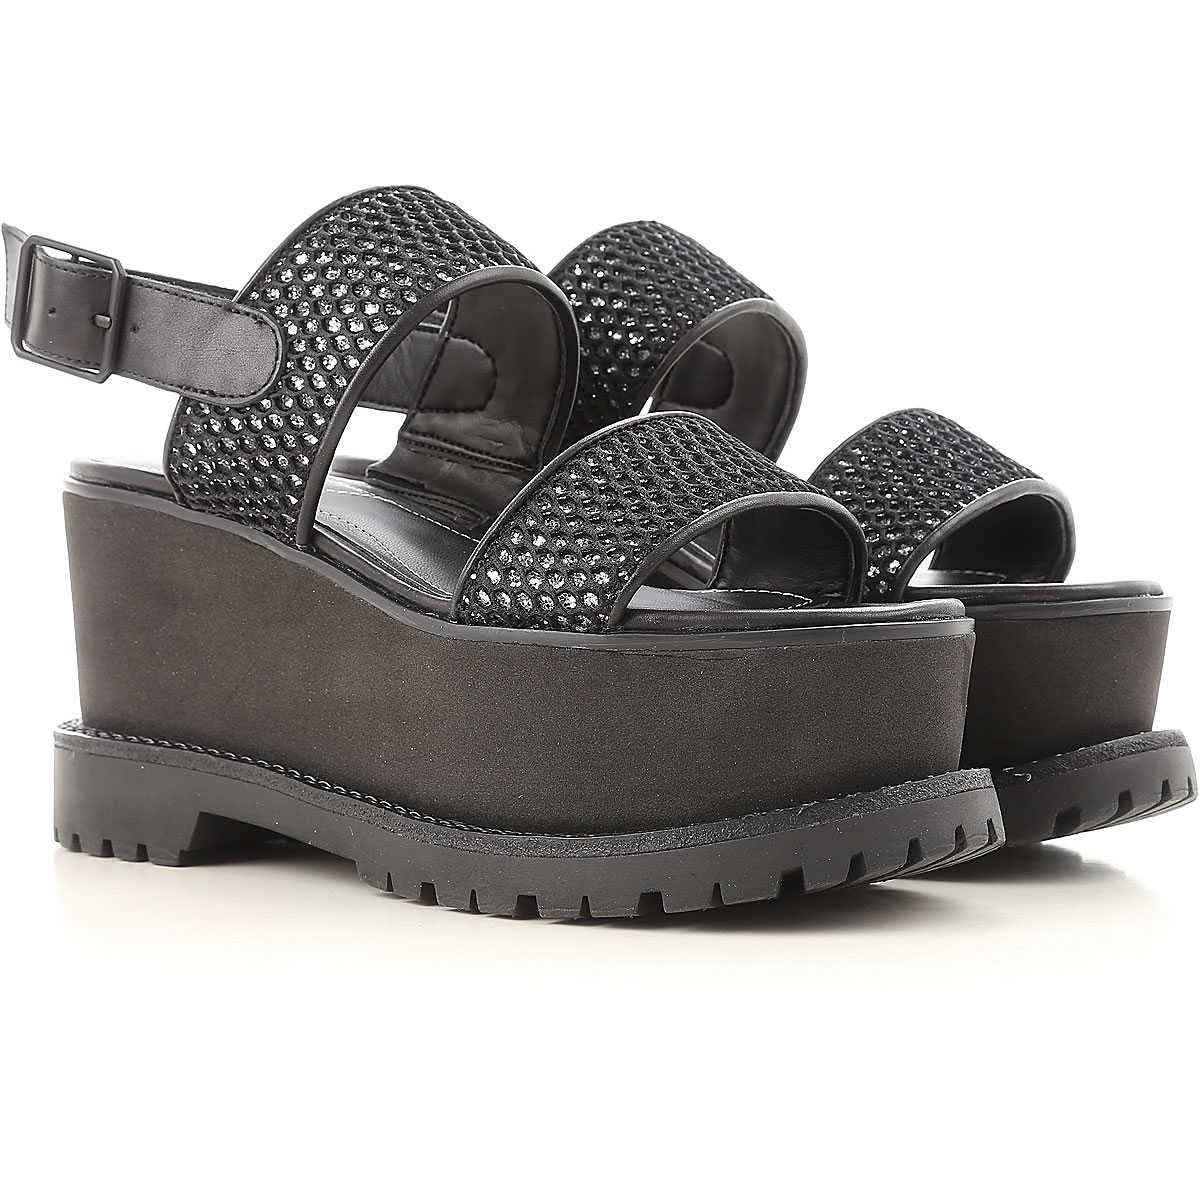 Kendall Kylie Wedges for Women in Outlet Black Canada - GOOFASH - Womens HOUSE SHOES